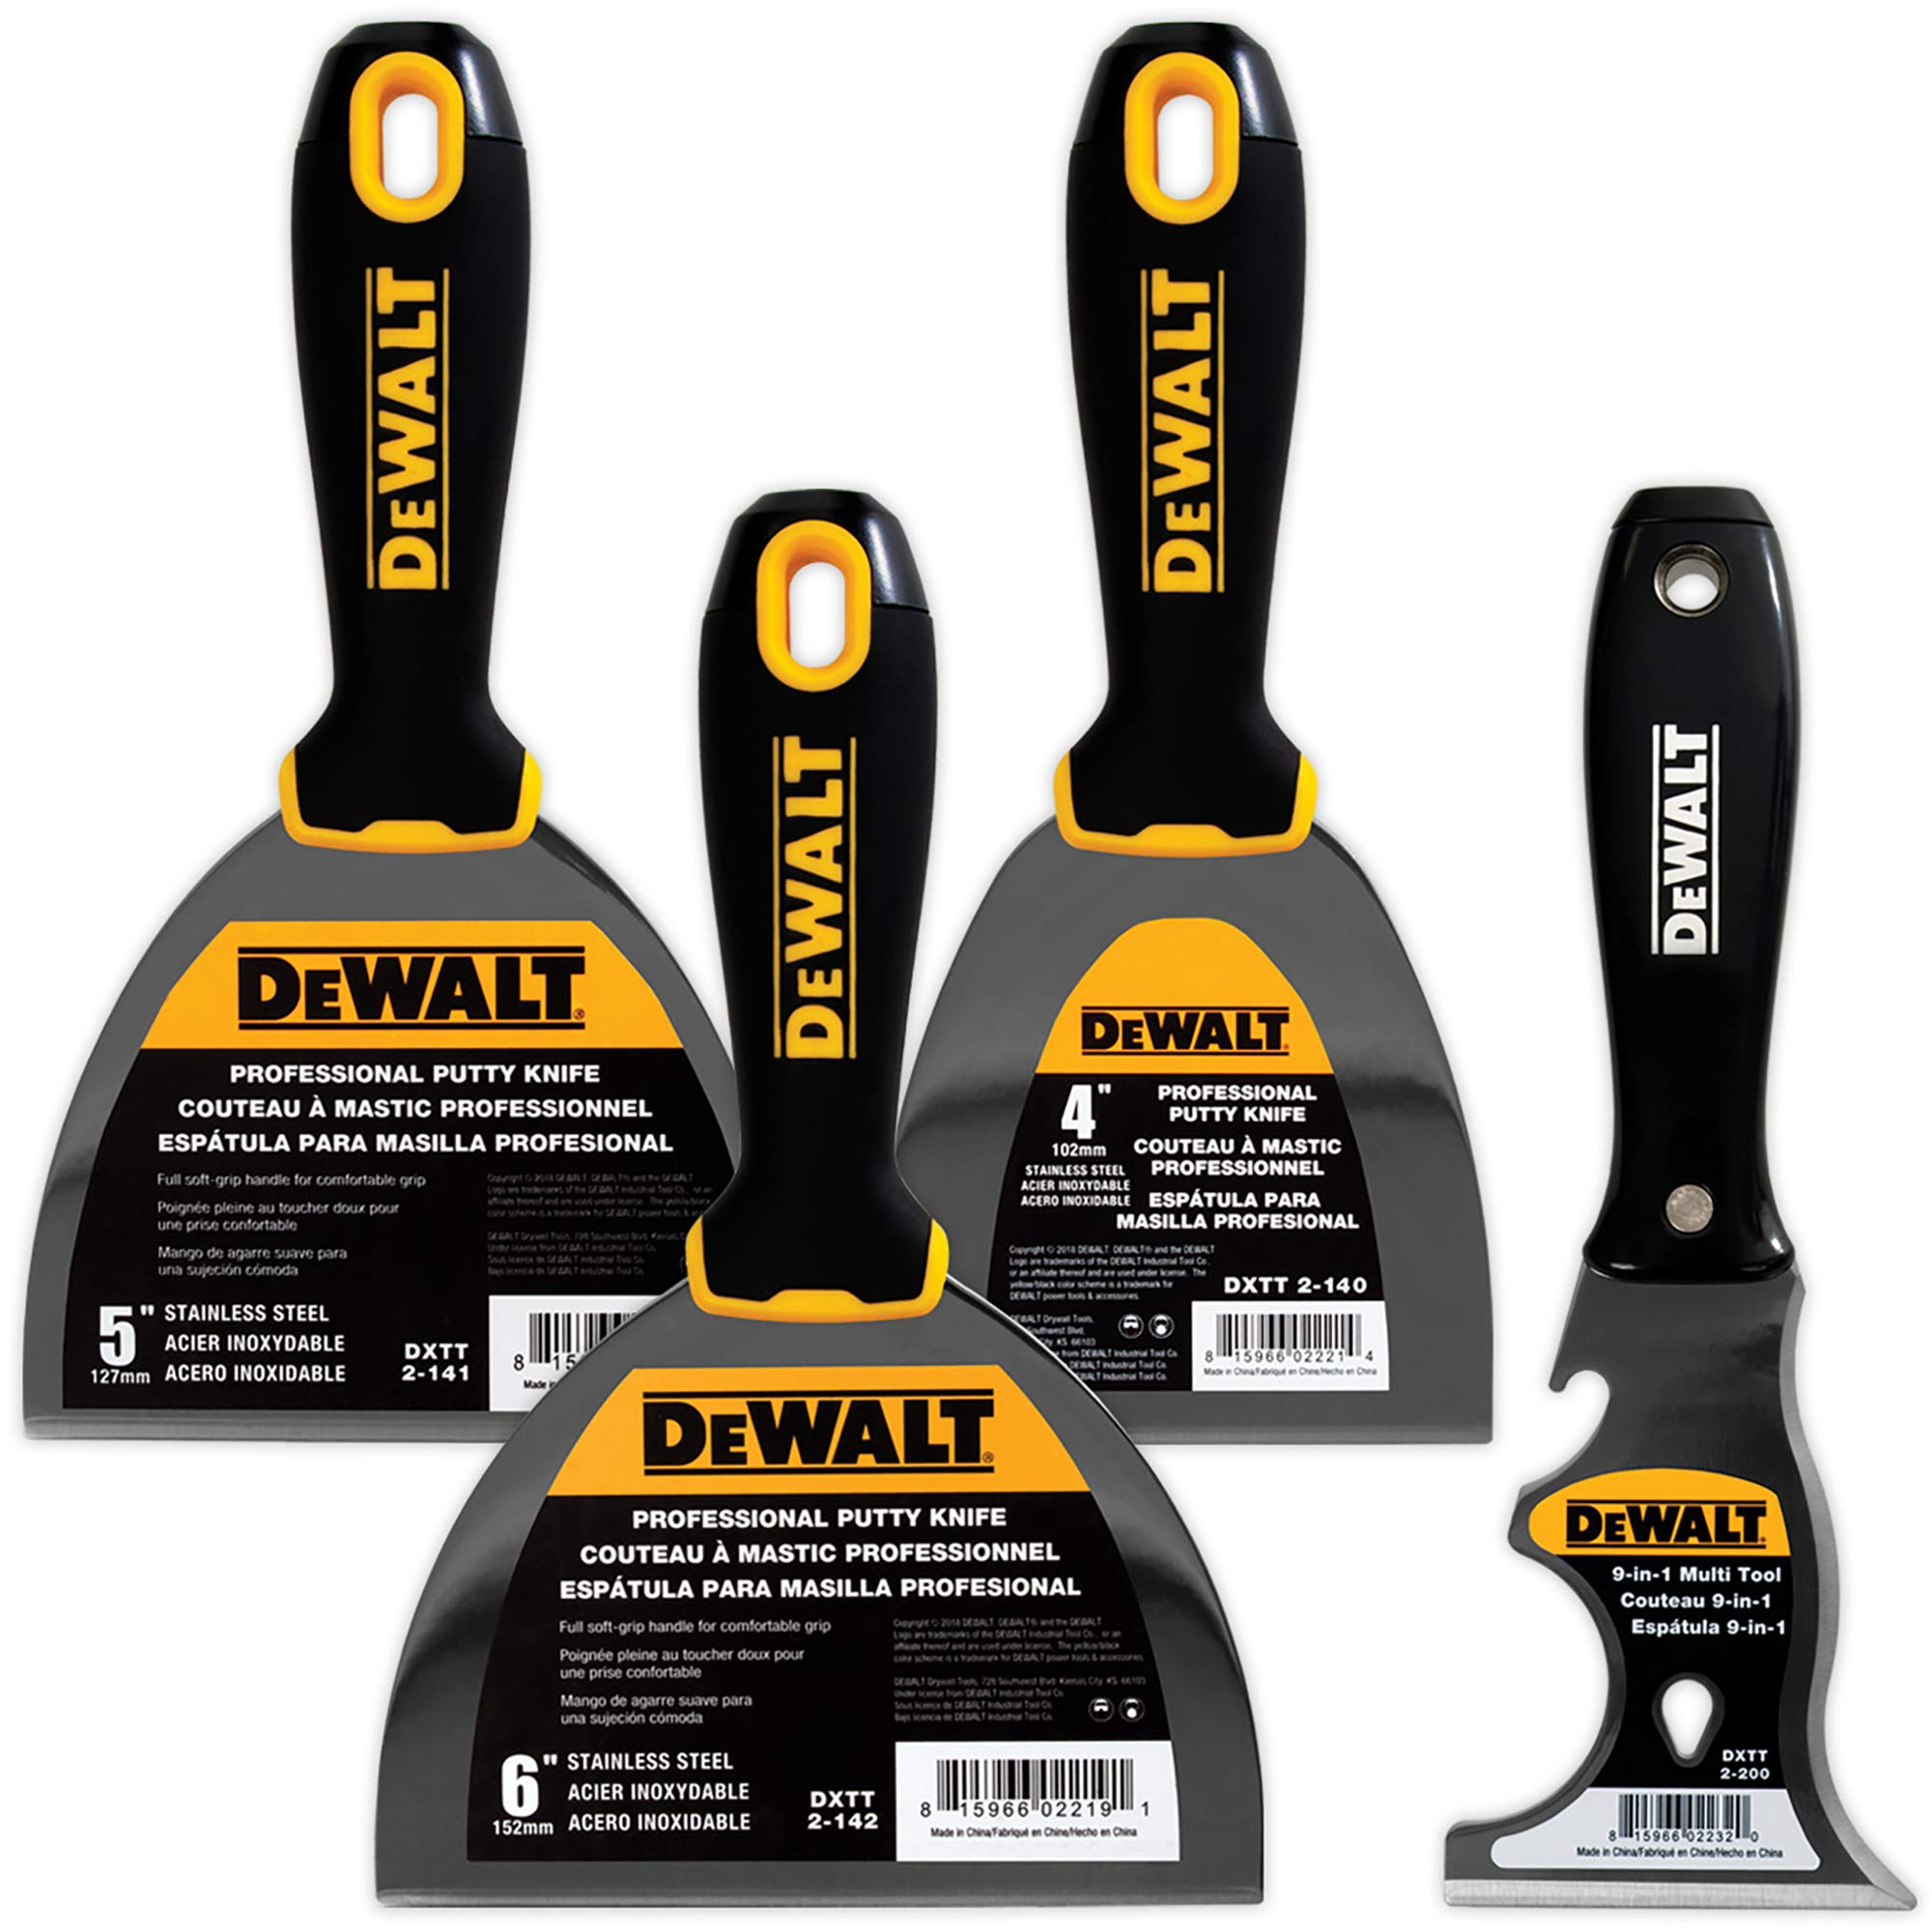 DEWALT Stainless Steel Putty Knife 3-Pack | 4/5/6-Inch + 9-in-1 Painter's Multitool Included for FREE | Soft Grip Handles | DXTT-3-140 by DEWALT (Image #1)